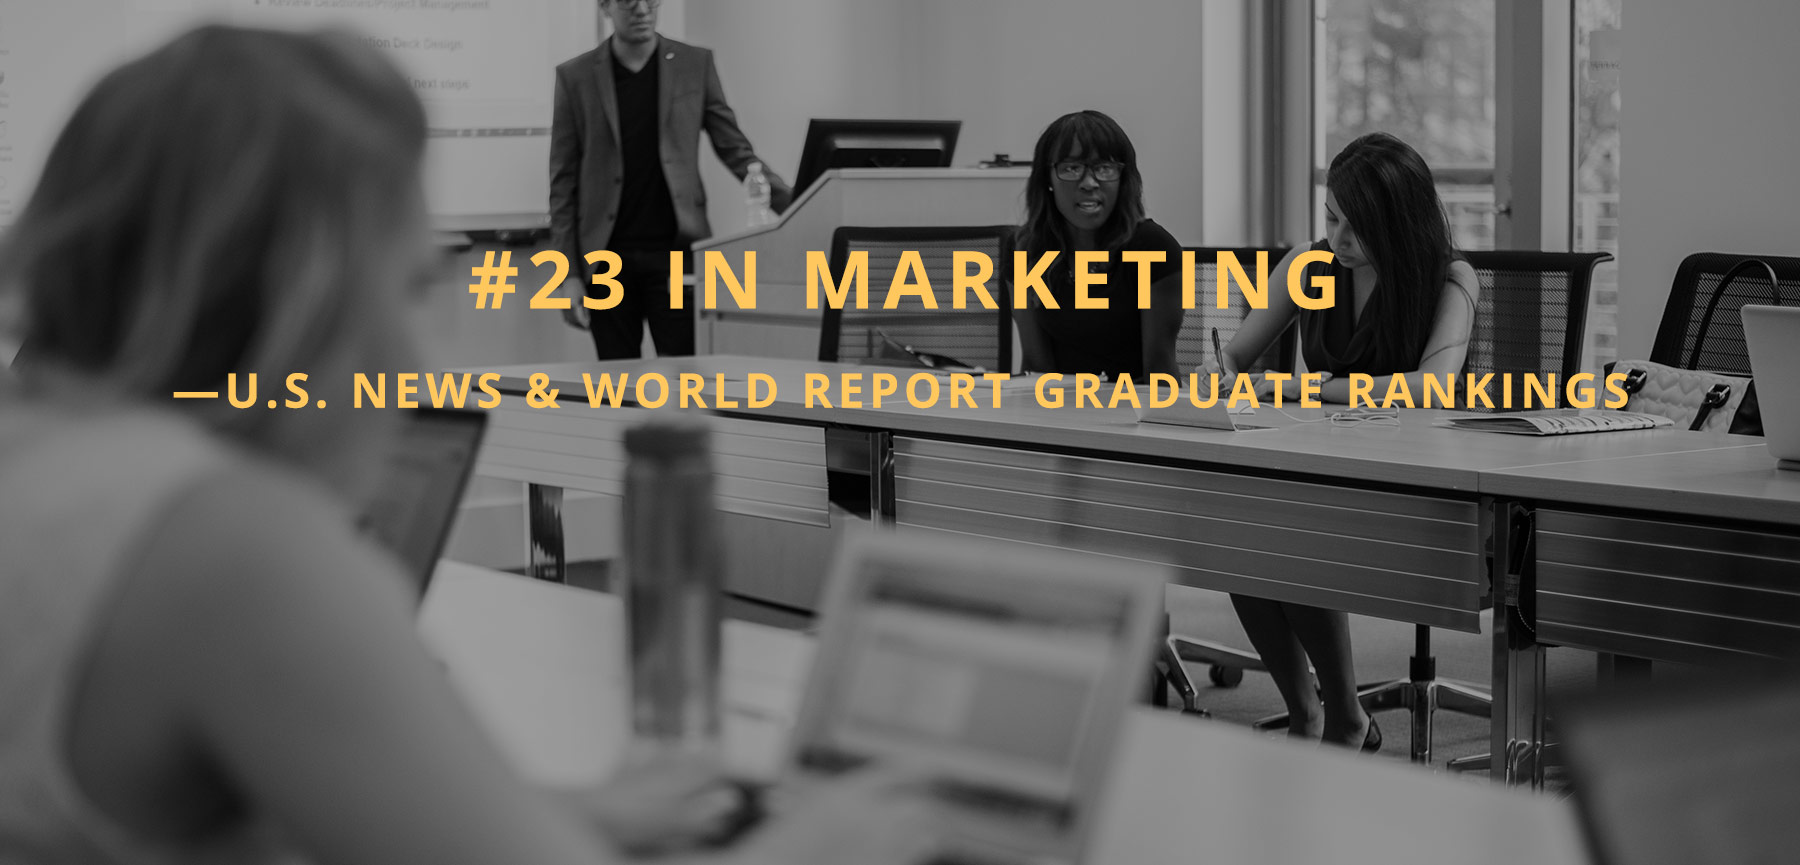 #23 in marketing